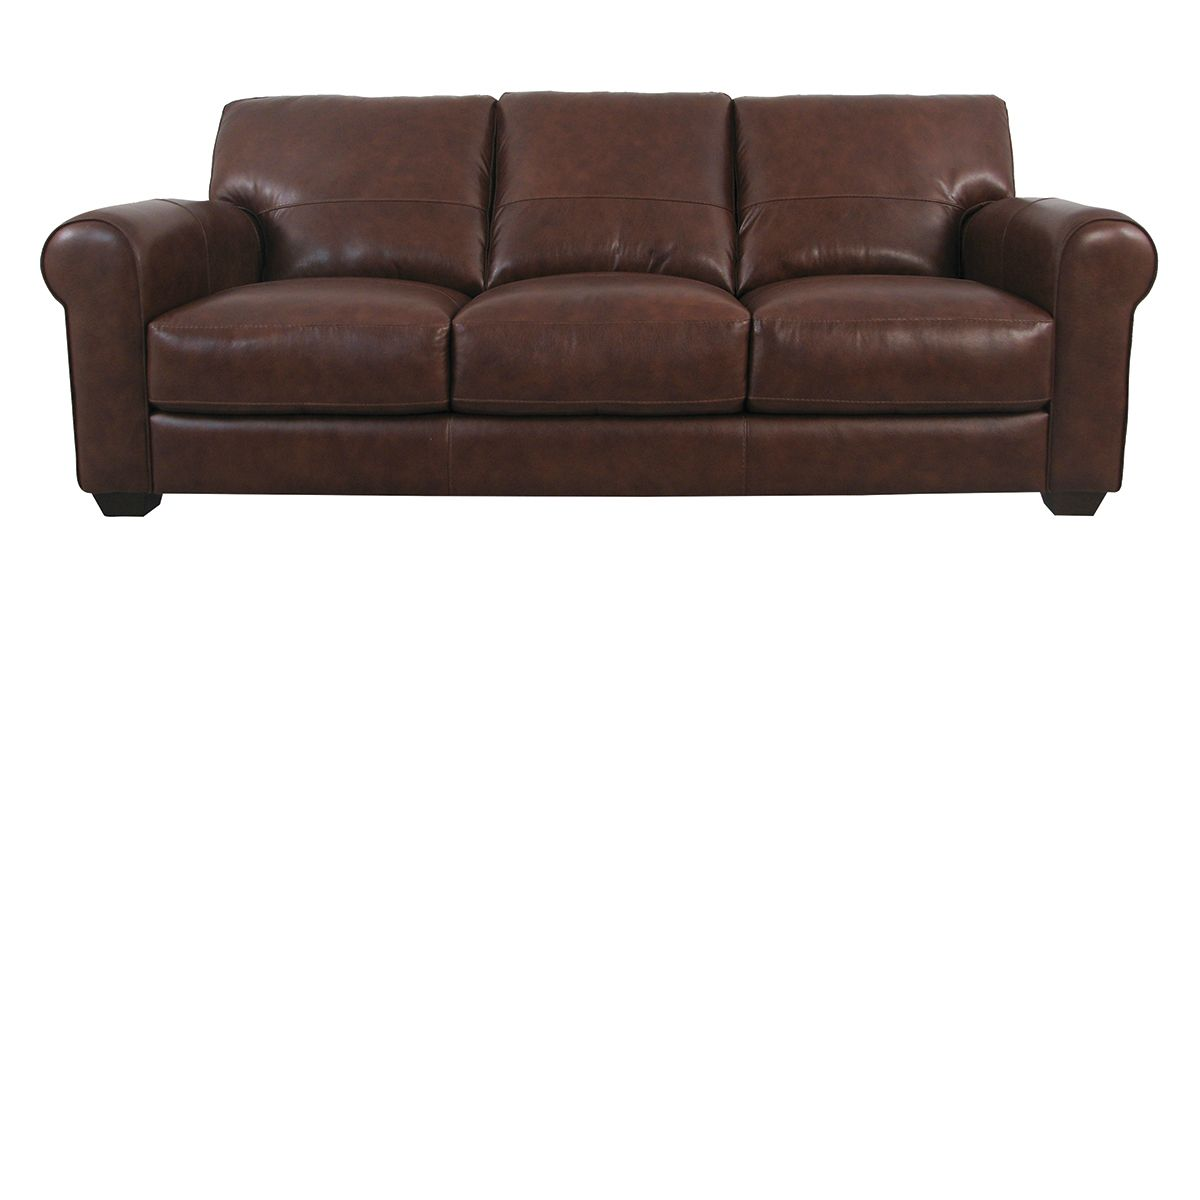 The Dump Furniture Store: STRANDED MERCHANDISE: LEATHER